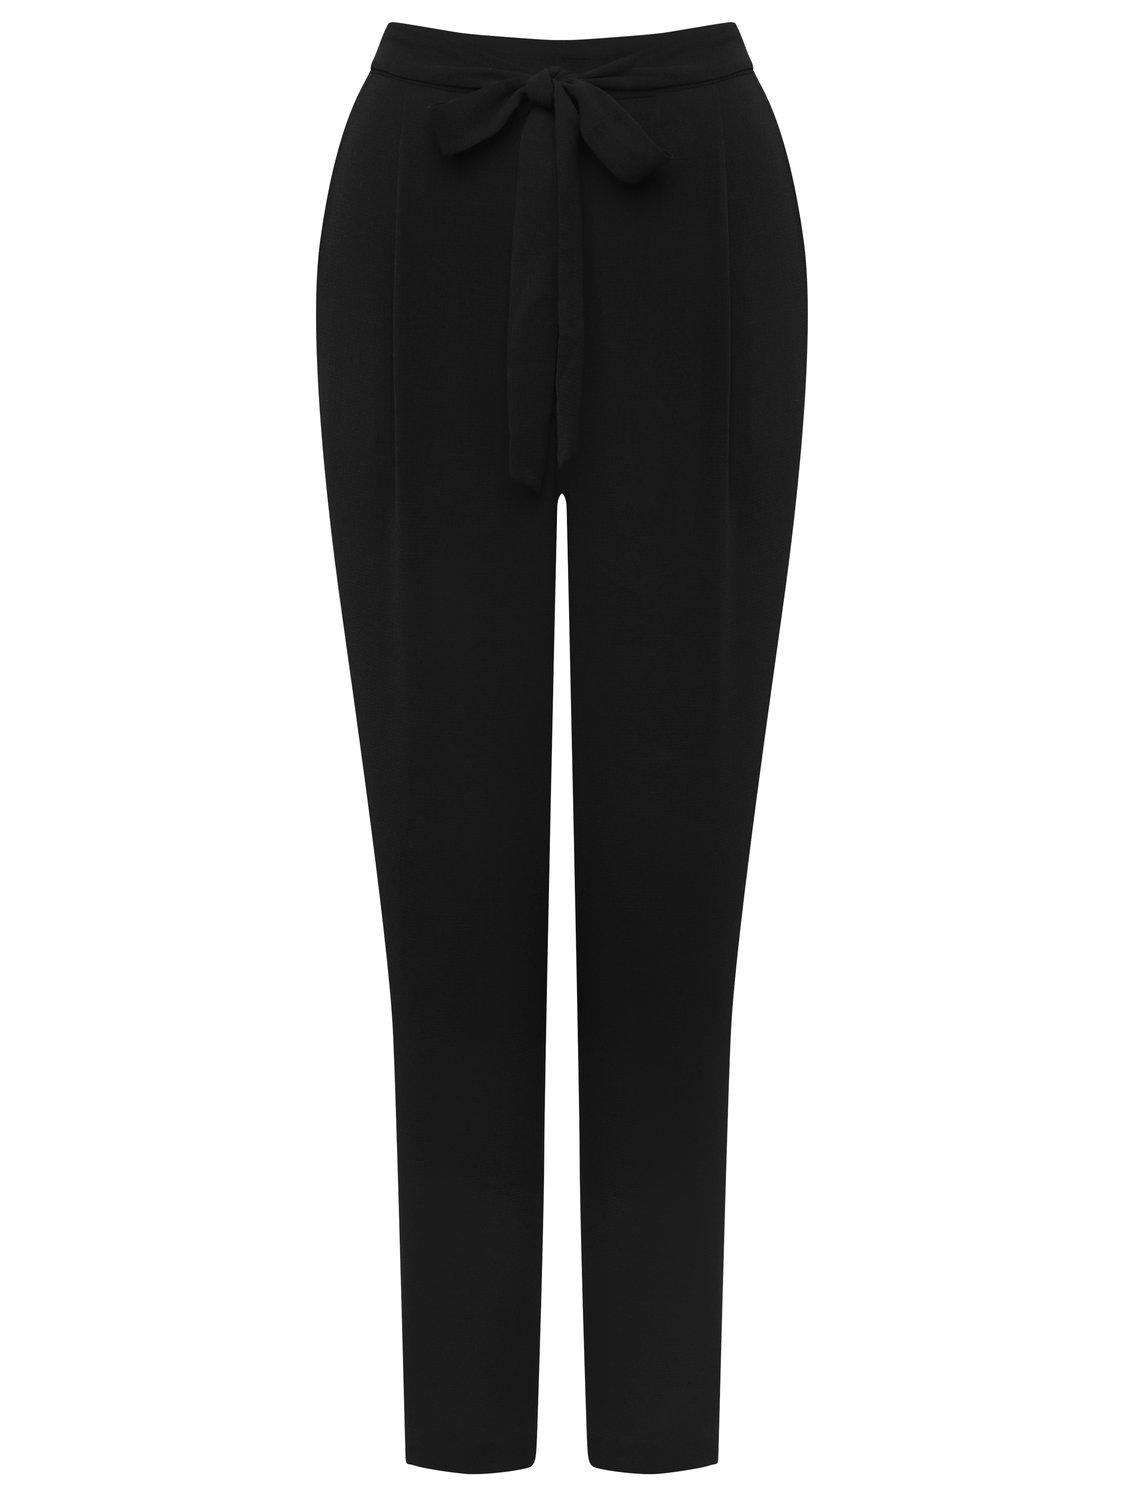 women's ladies plain stretch waist side pocket tie front crepe relaxed fit tapered trousers